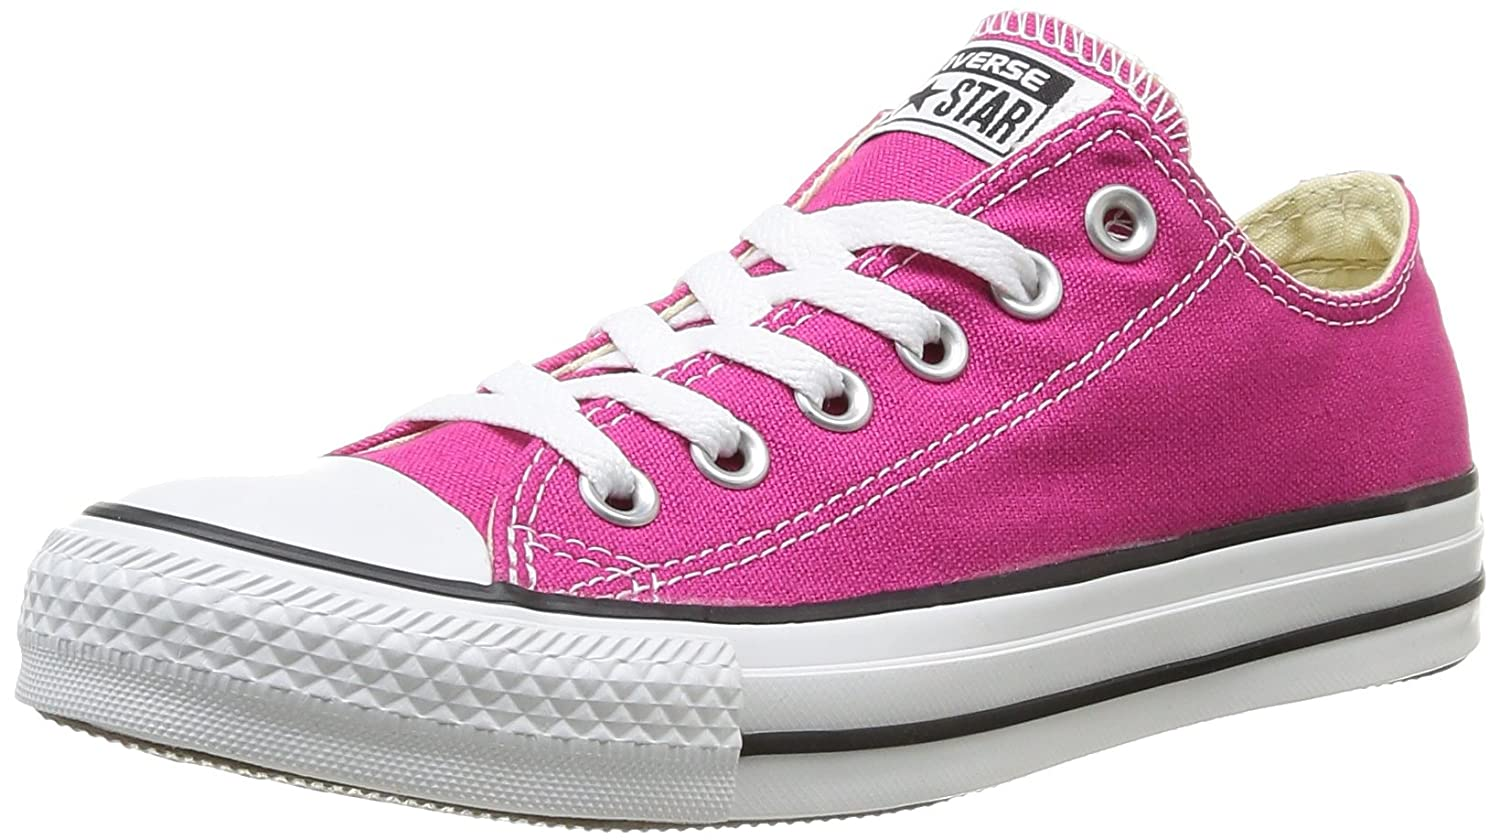 Converse Chuck Taylor B075VC15KX Baskets All Star Core, Baskets Converse Mixte Adulte Rose 407a71a - reprogrammed.space